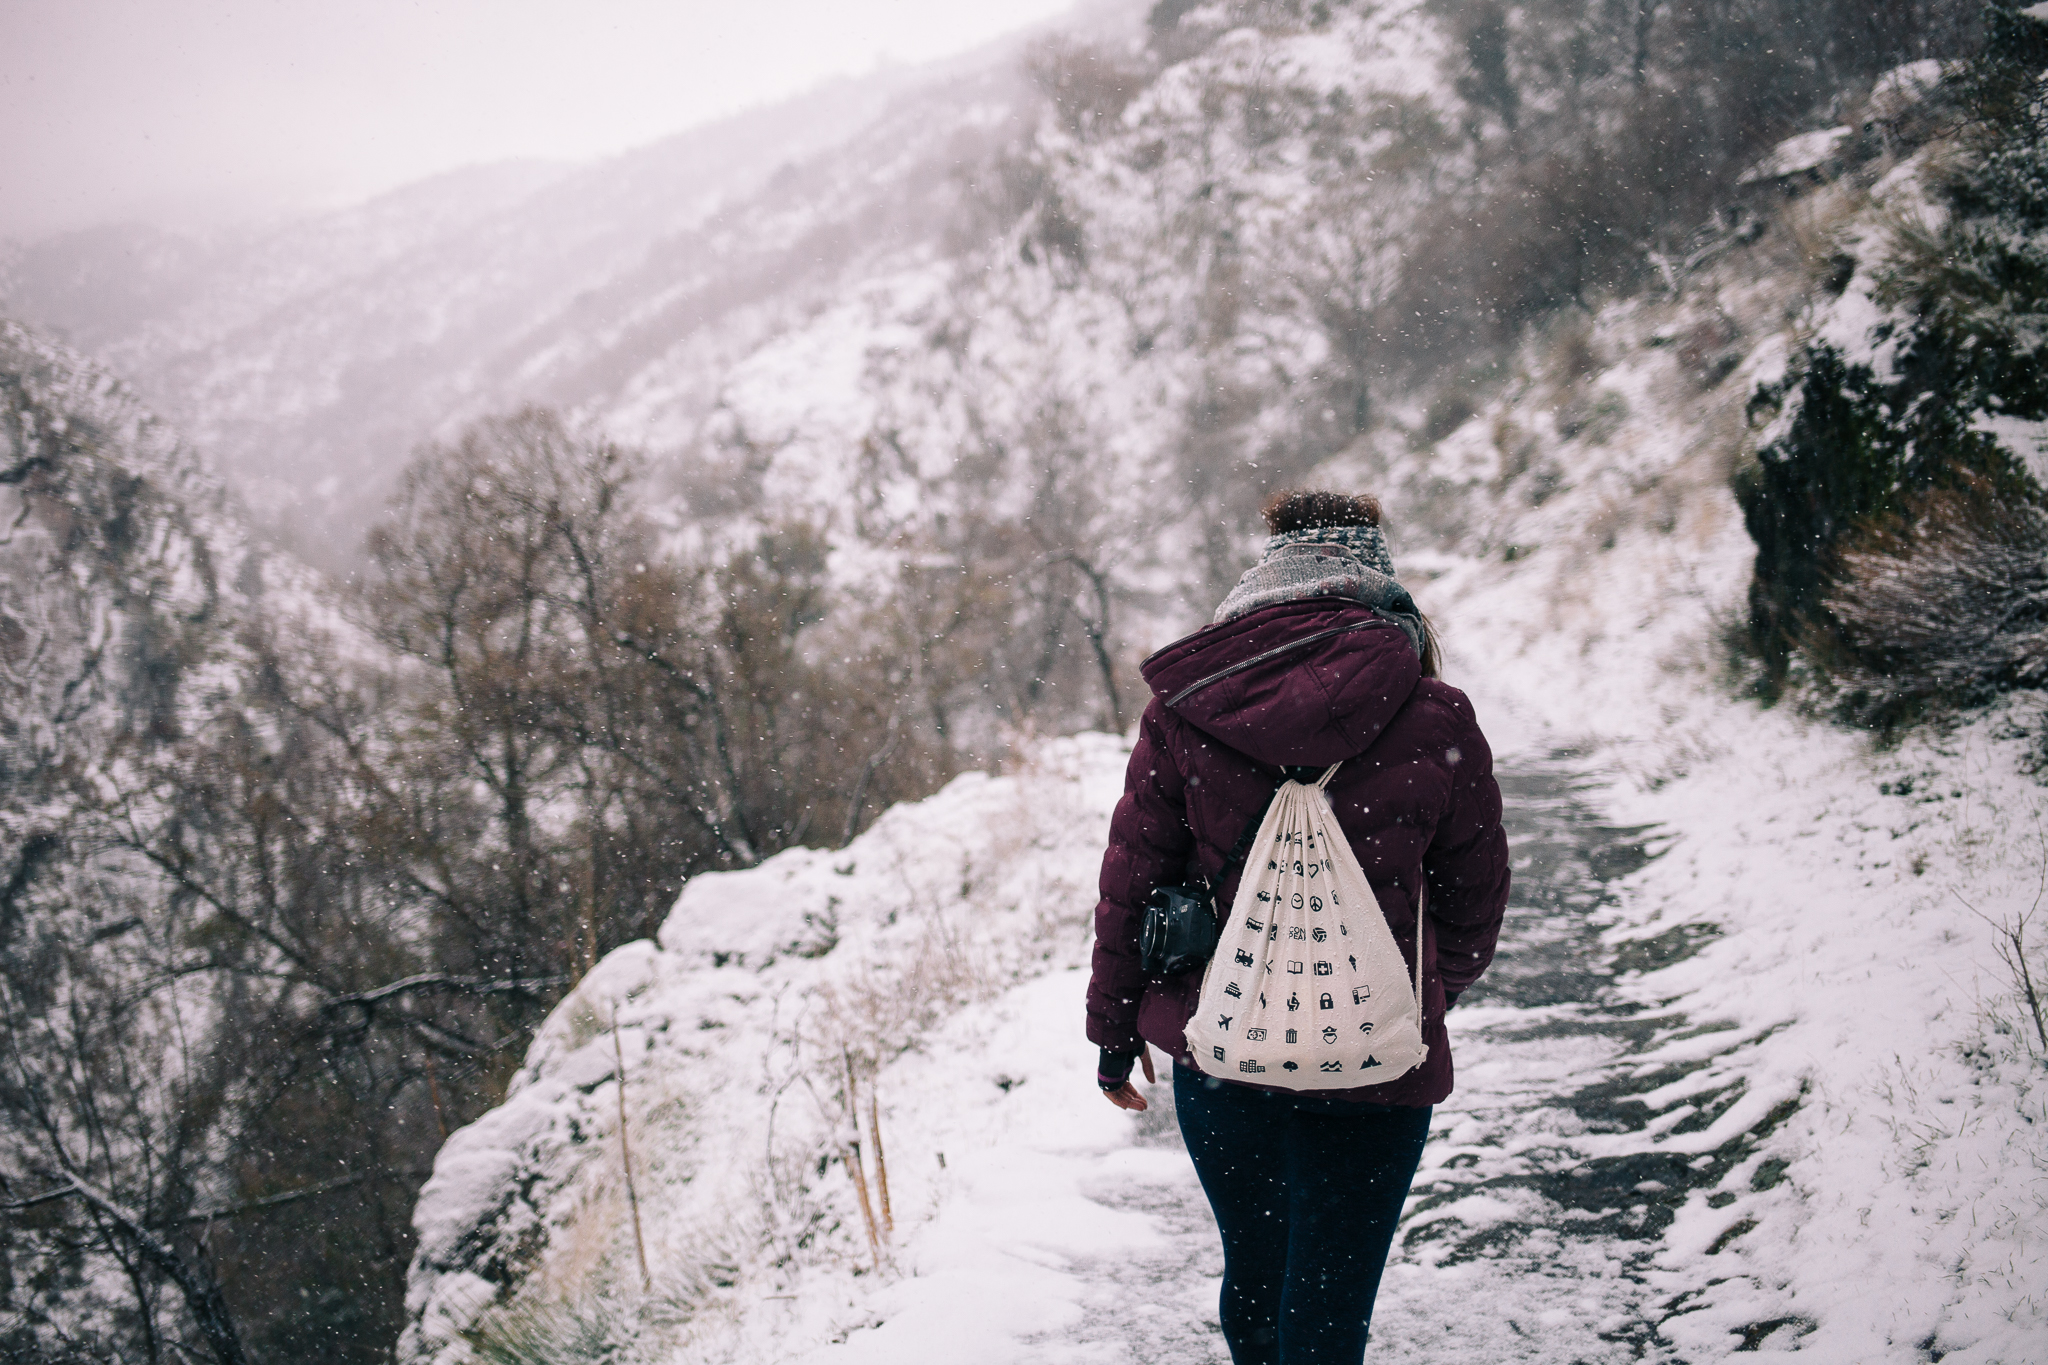 Hiking the Vereda de la Estrella in the winter with Aisling was quite a different experience!